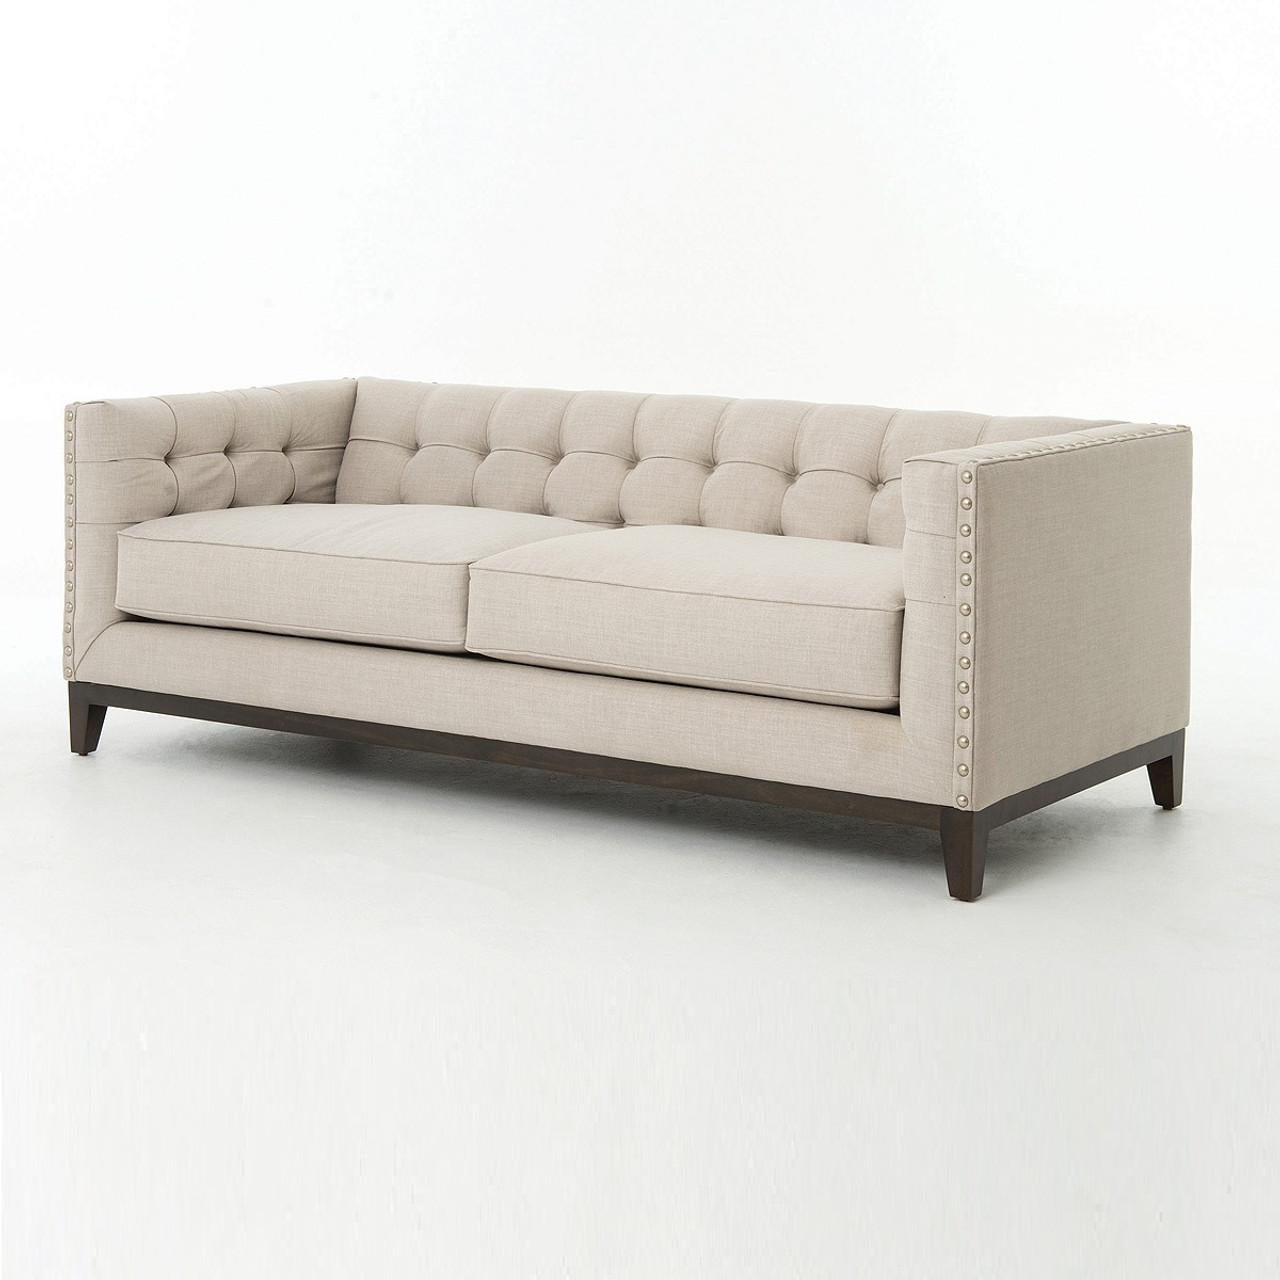 Greenwich Modern Tufted Linen Nailhead Sofa Zin Home